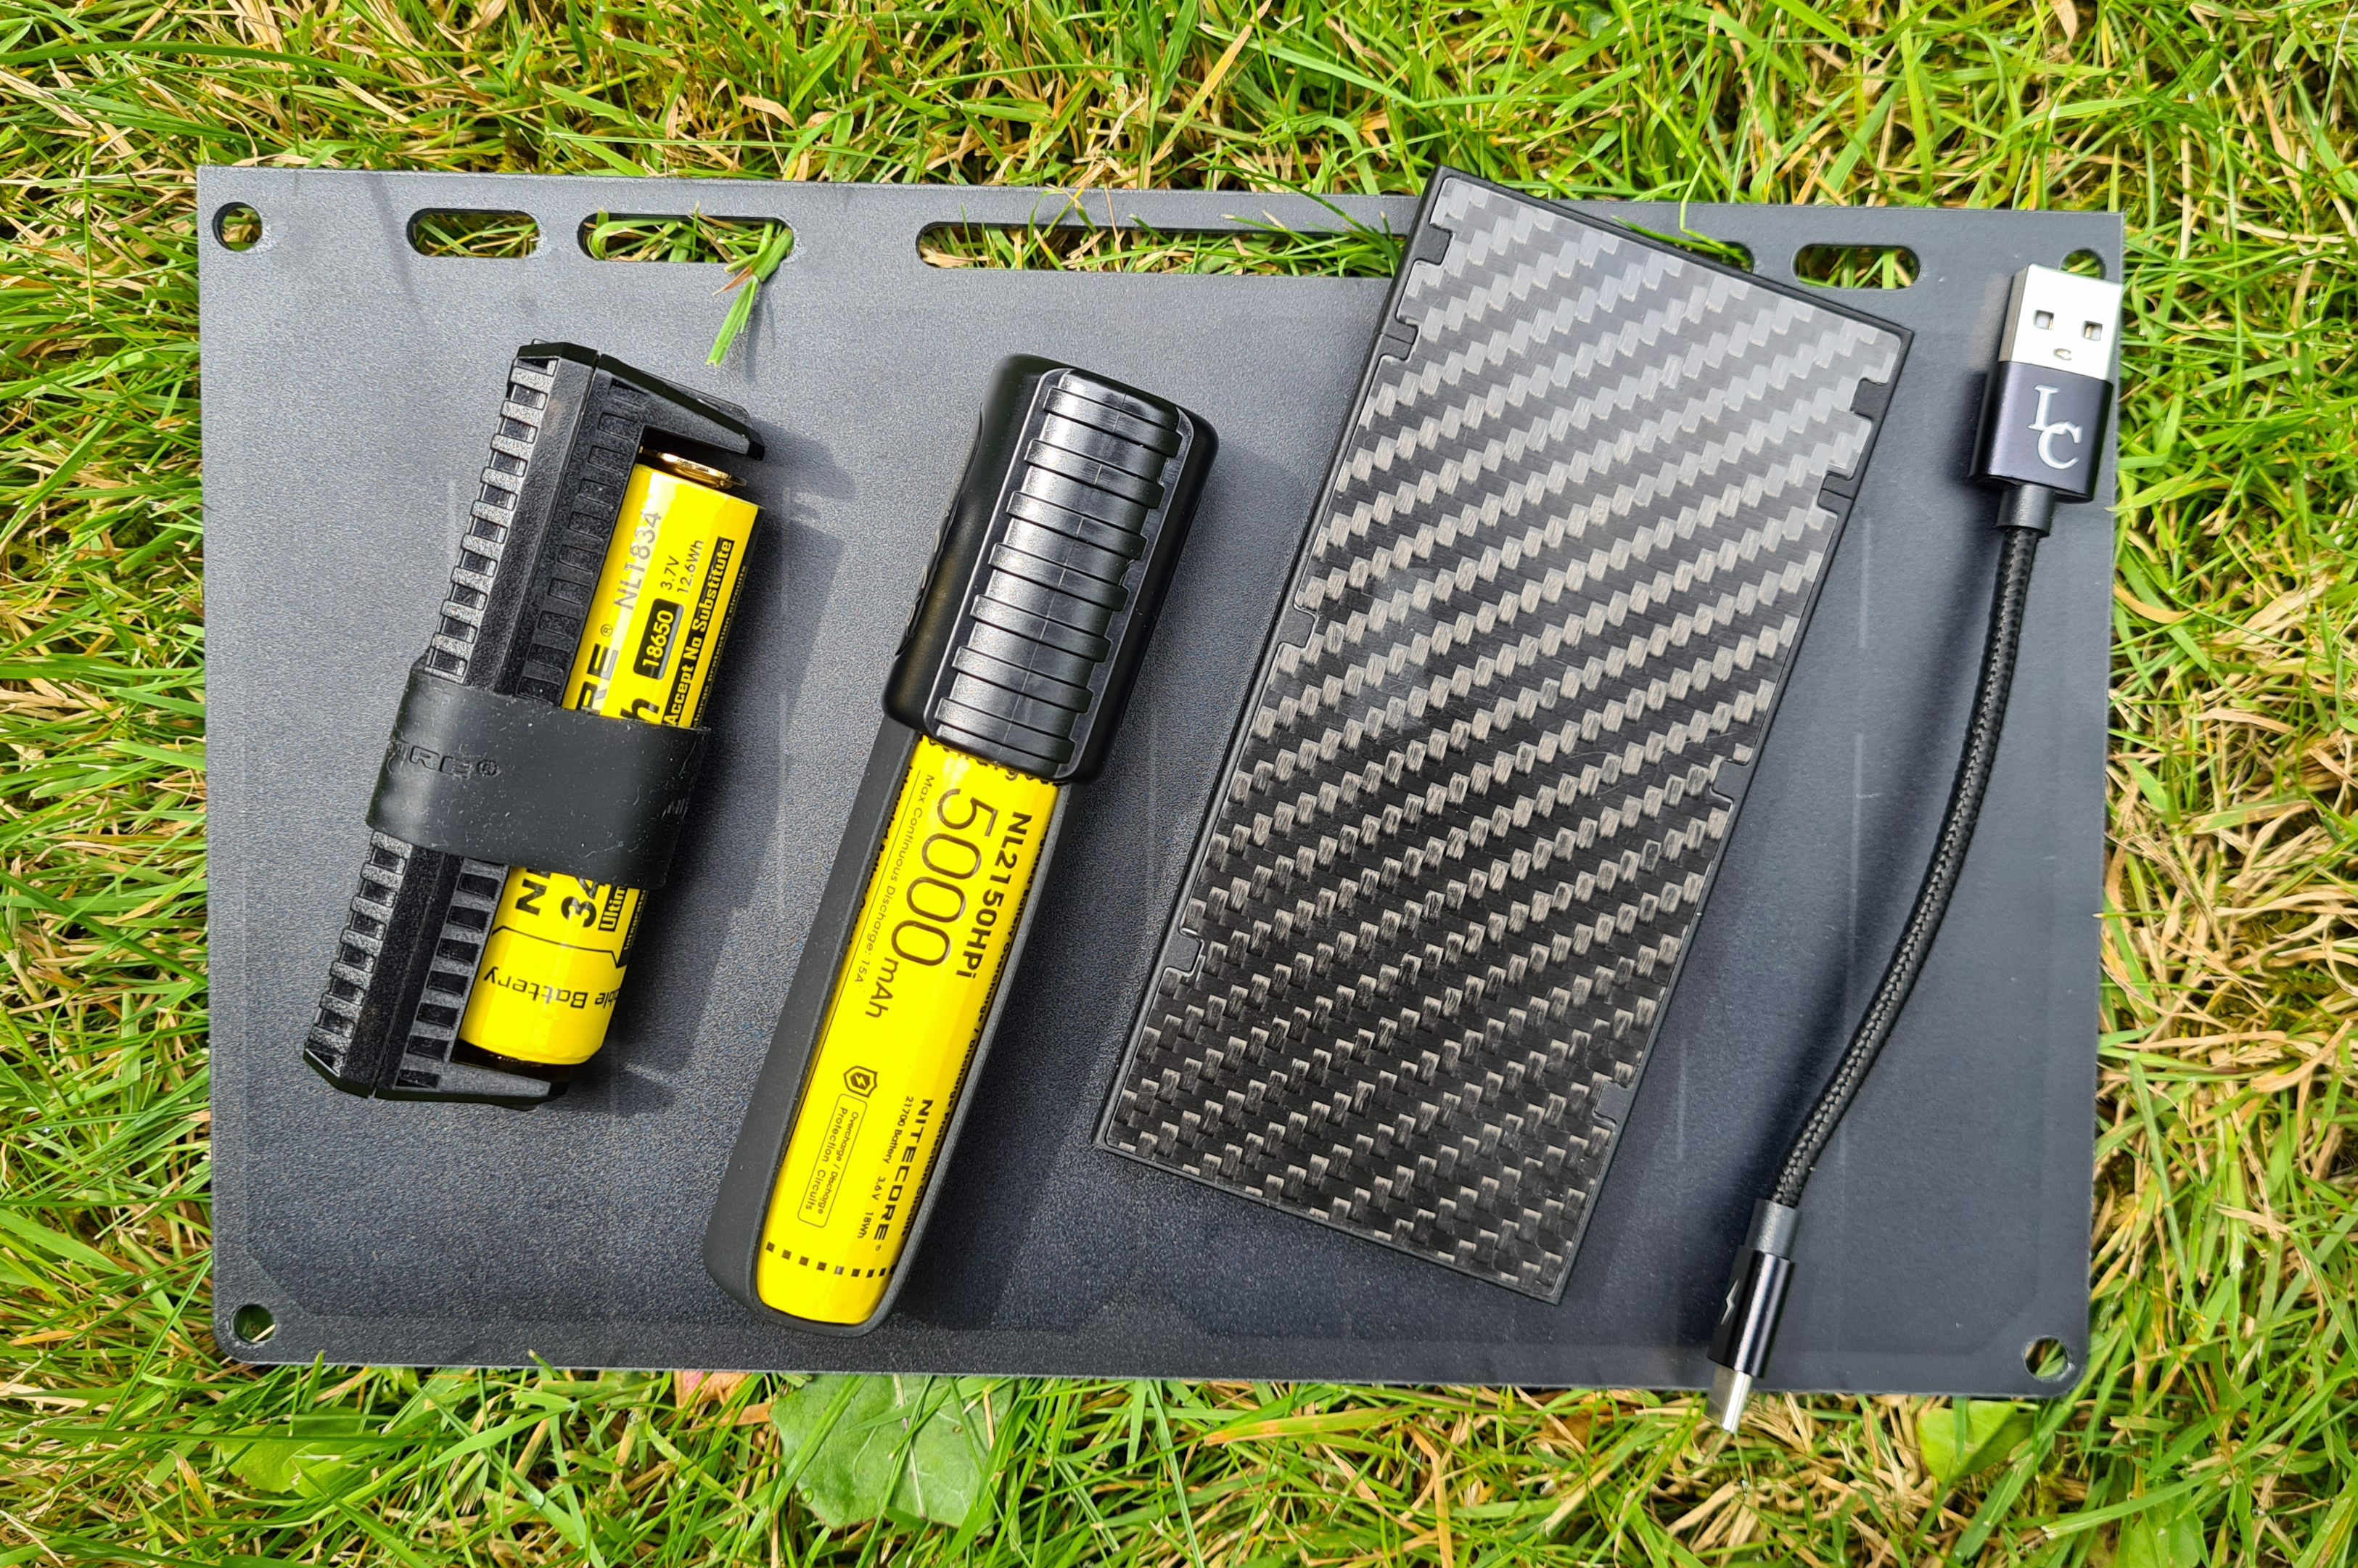 Three possible options for a solar panel / power bank set up. Lixada solar panel with either Nitecore F1 charger with 3400mAh 24650 battery, or Nitecore F21i charger with 5000mAh 21700 battery, or Nitecore 10000mAh powerbank, plus shortie lead